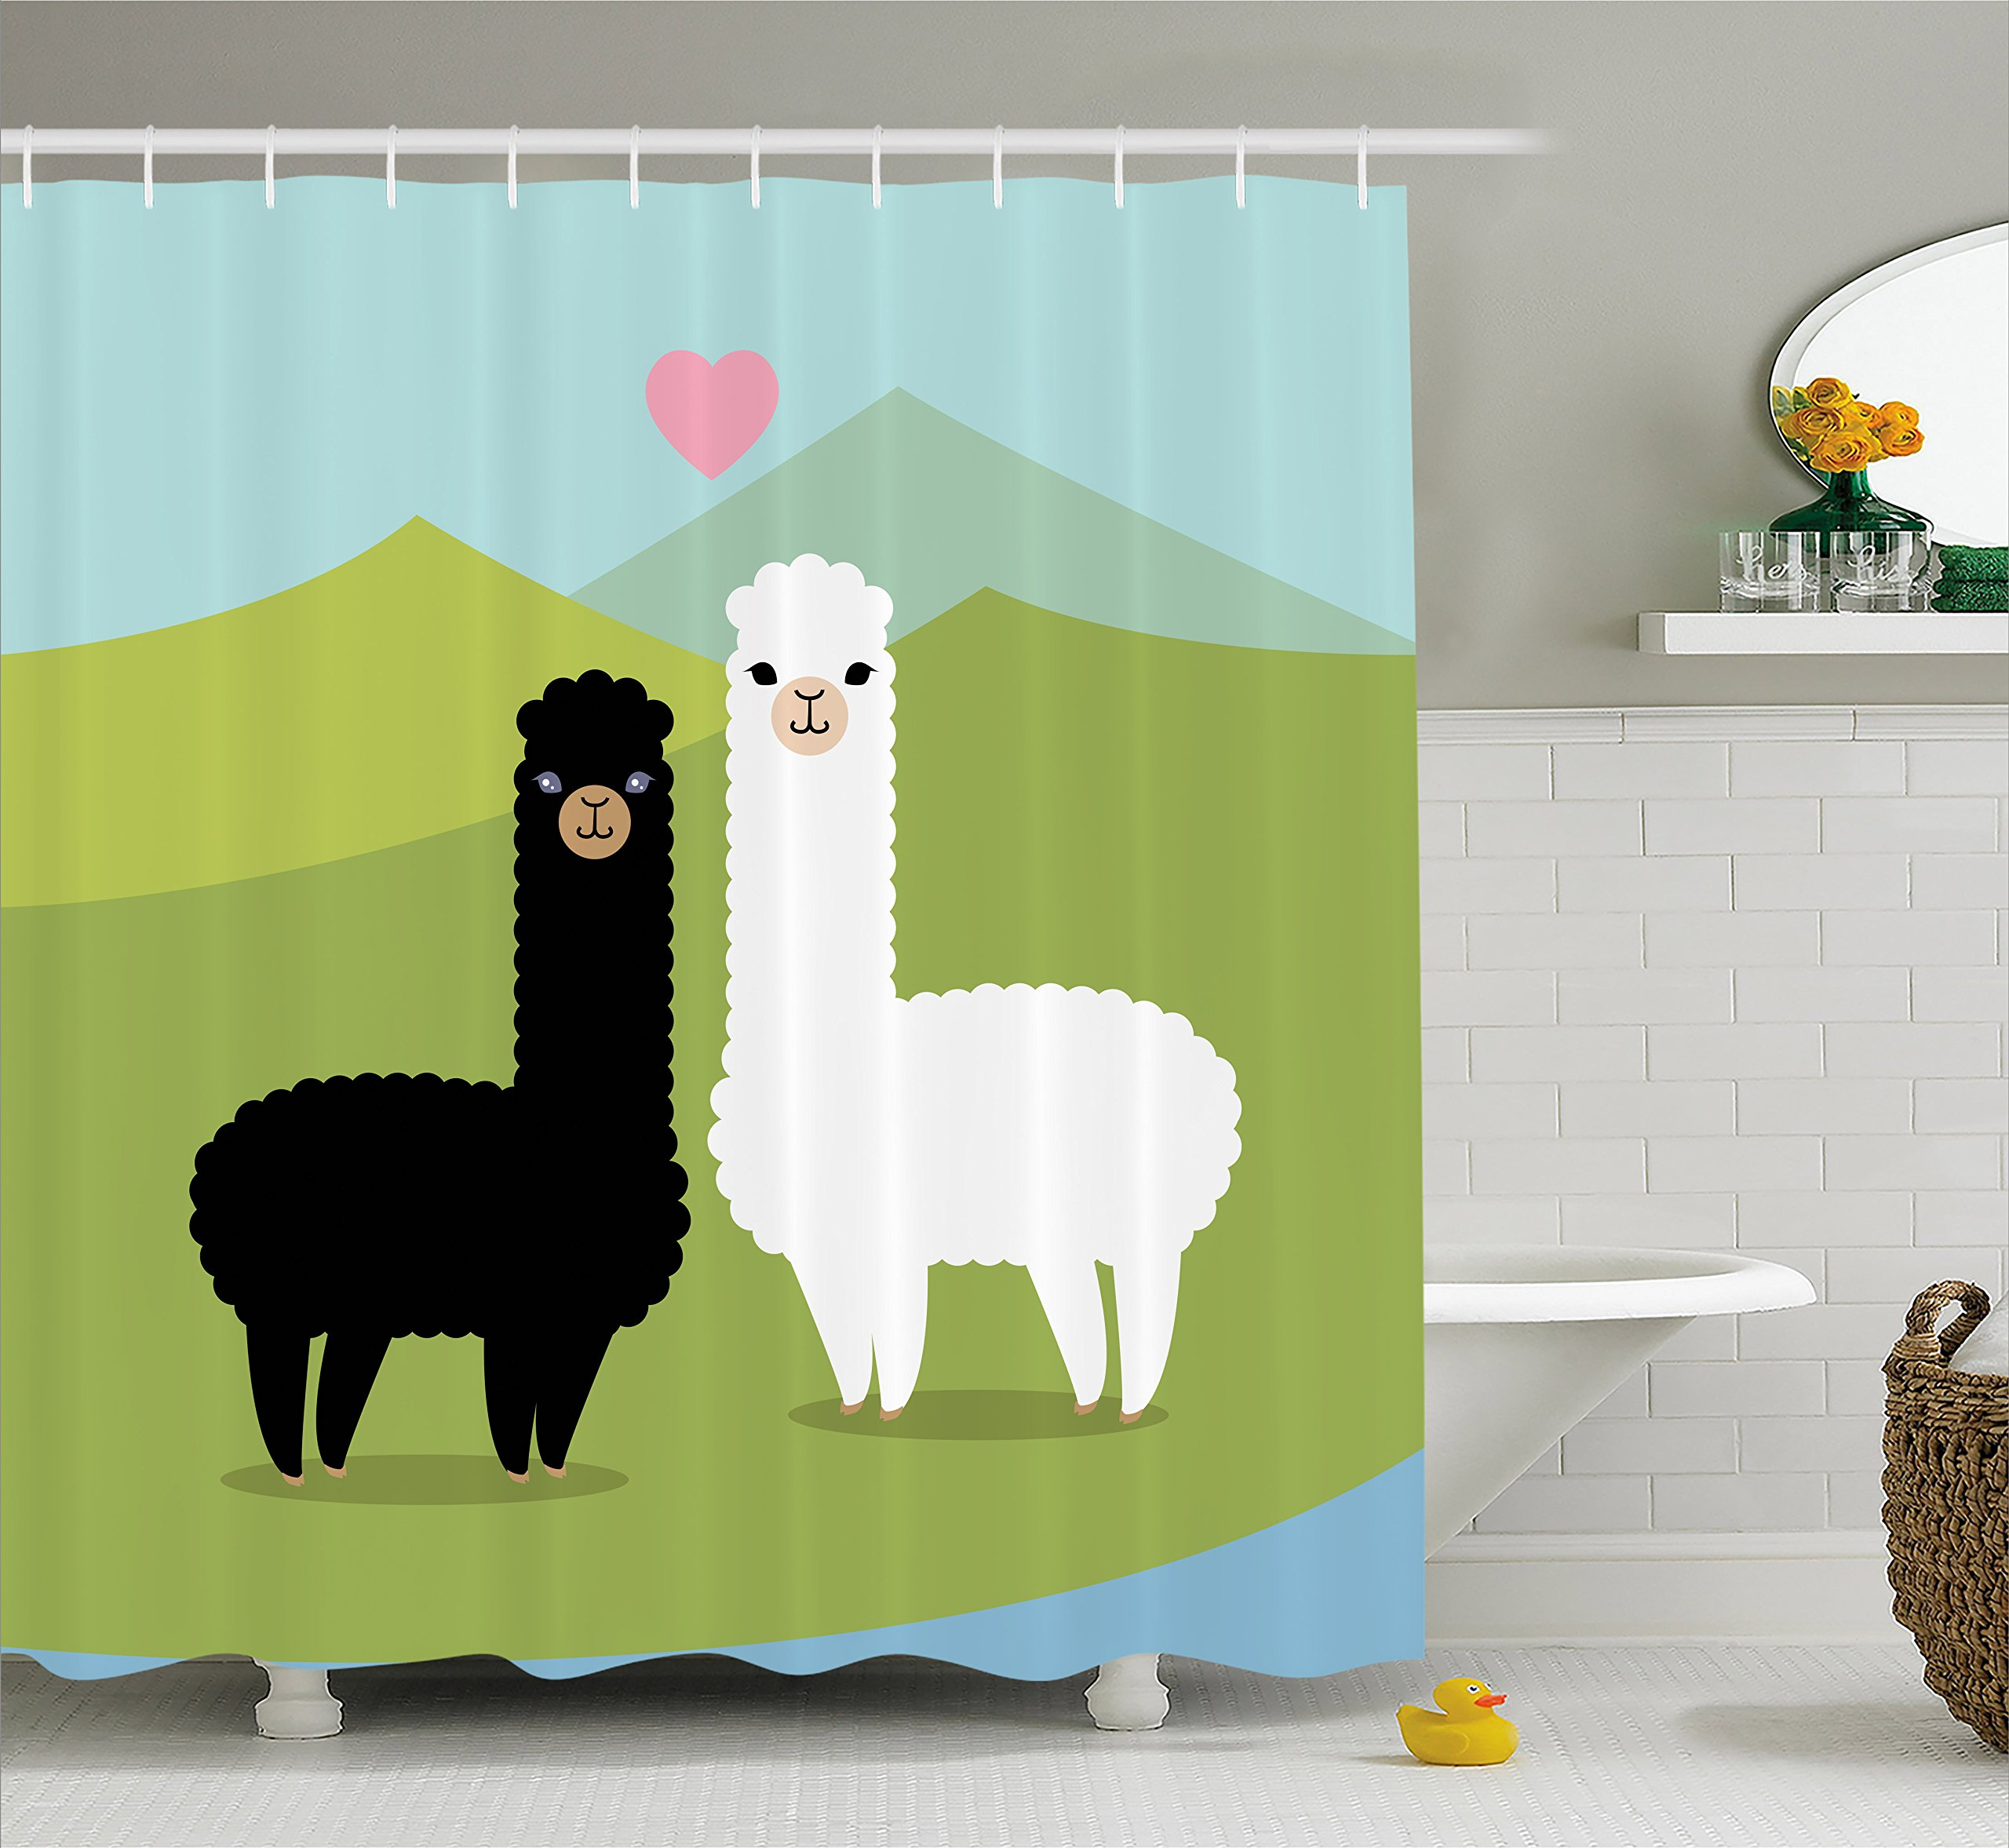 Ambesonne Llama Shower Curtain, Alpacas in Love in the Mountains Fauna Valentine's Animals with Contrasting Colors, Cloth Fabric Bathroom Decor Set with Hooks, 70 Inches, Multicolor